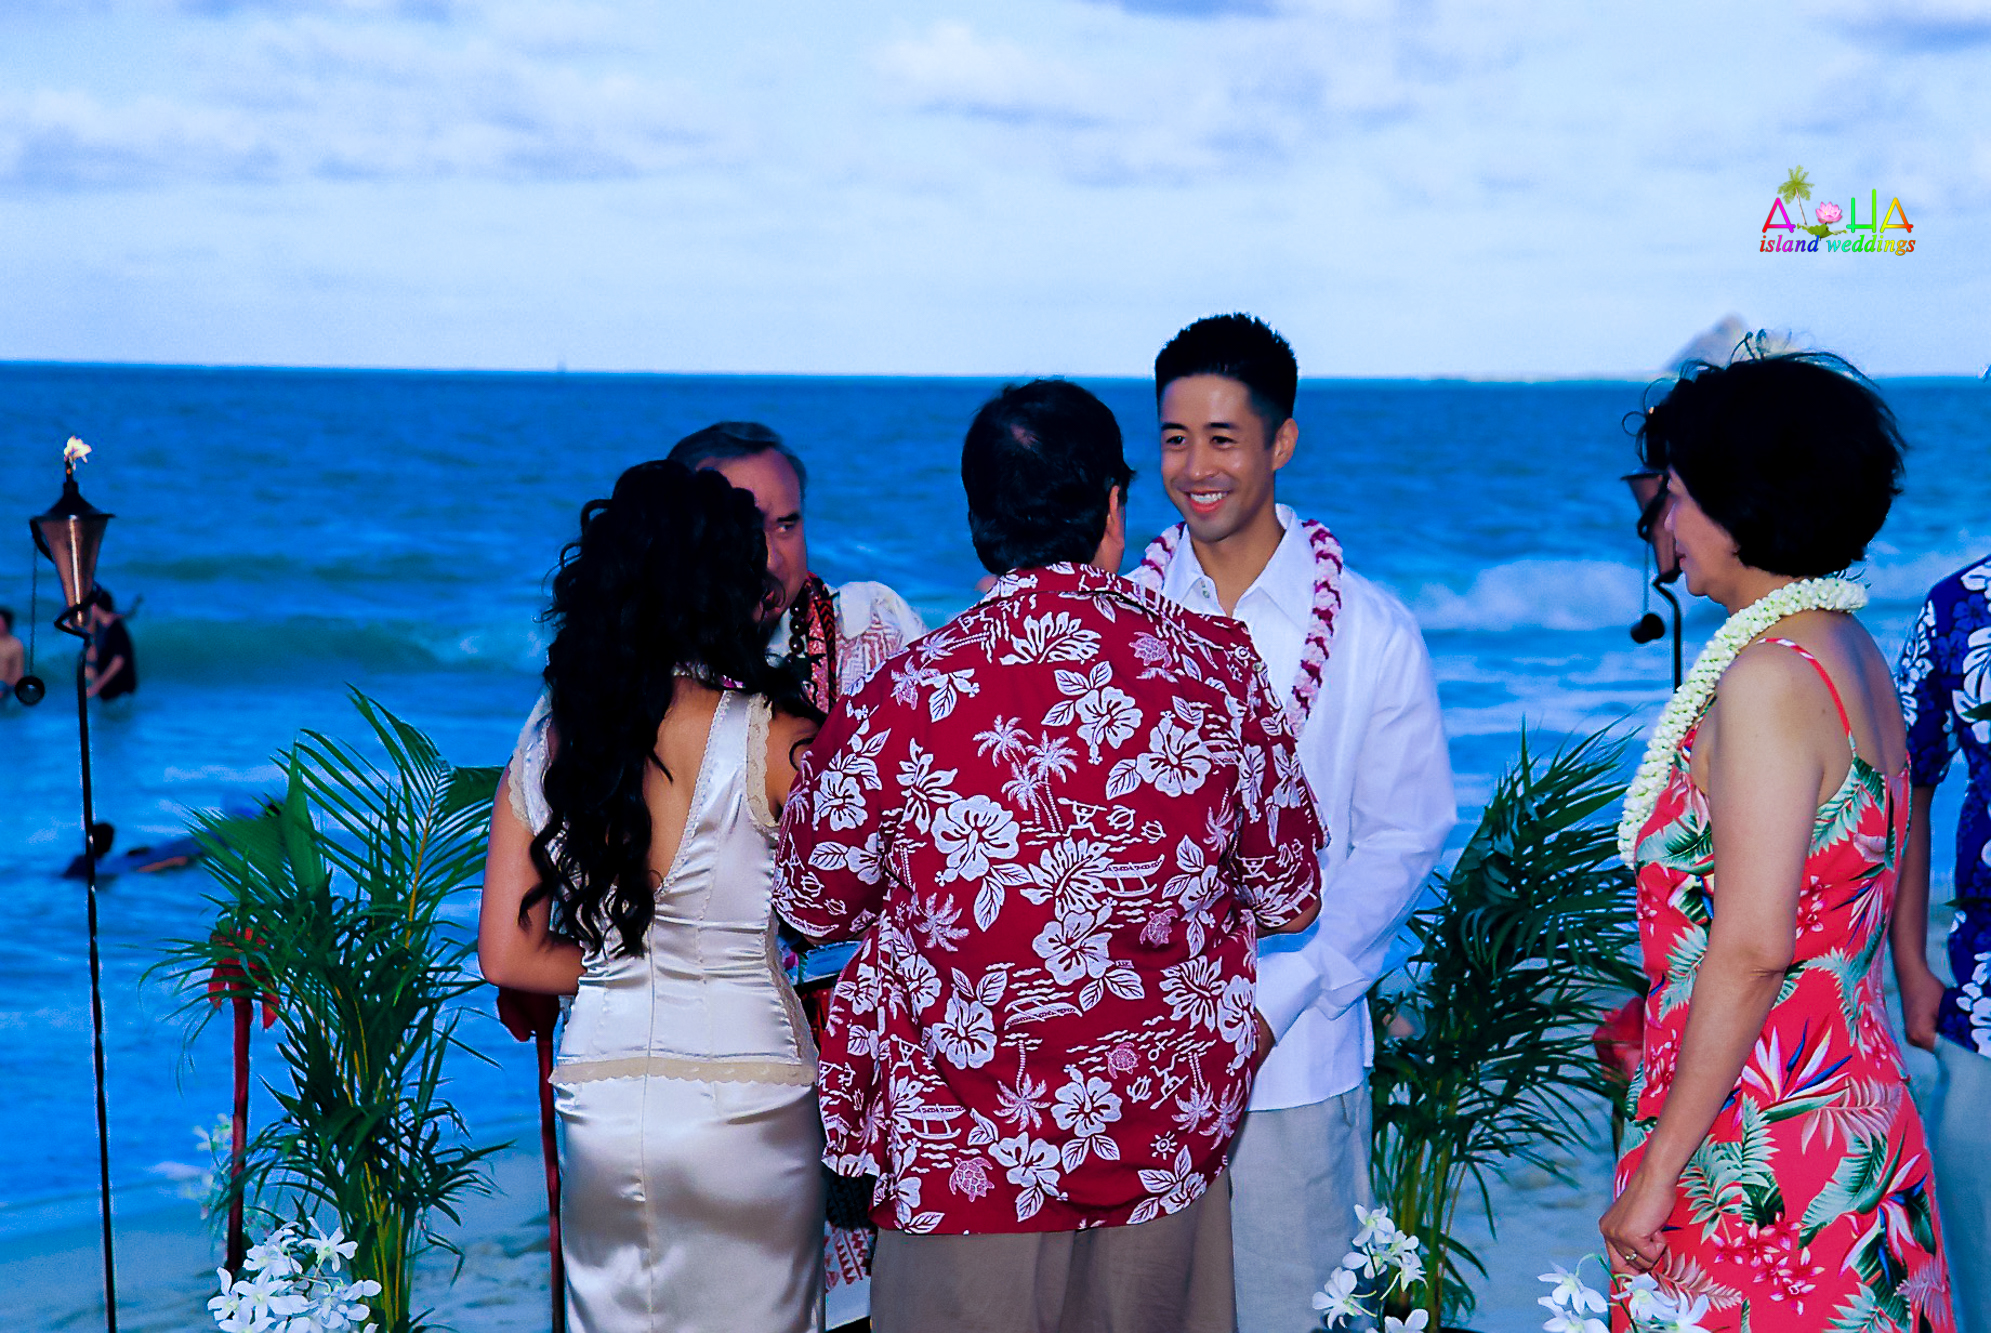 Beach wedding in Kailua-81